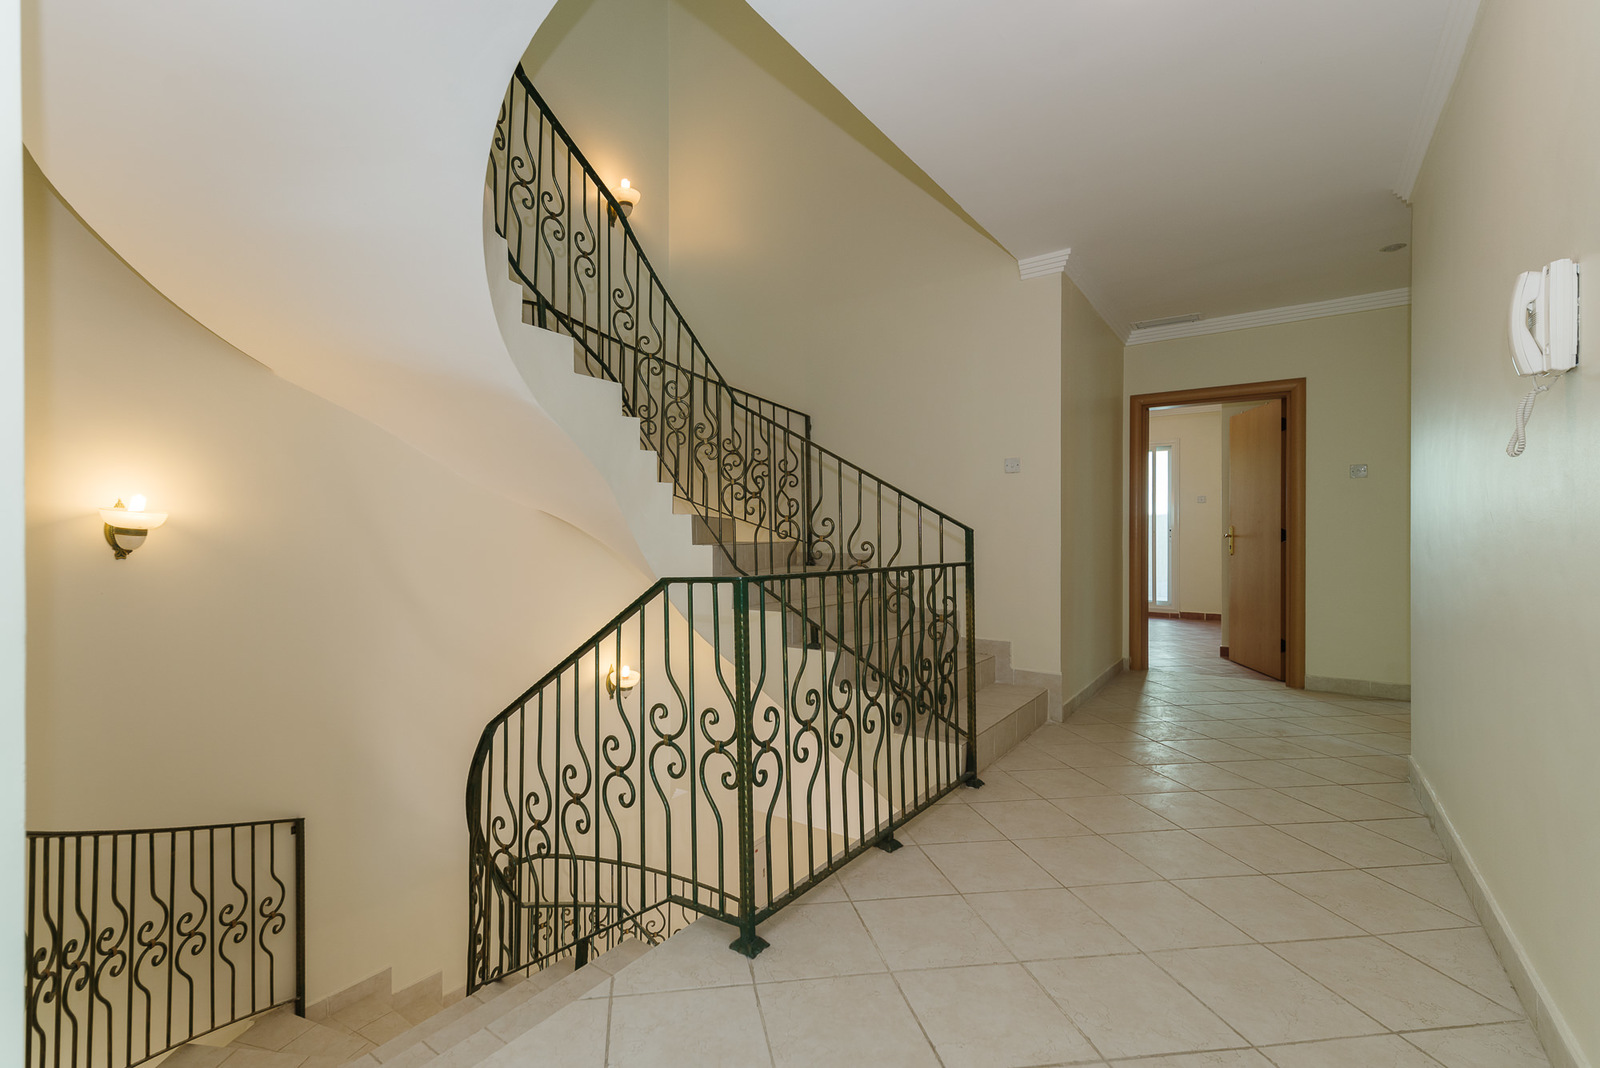 Abu Al Hasania – spacious, unfurnished villa suitable as a home or office.